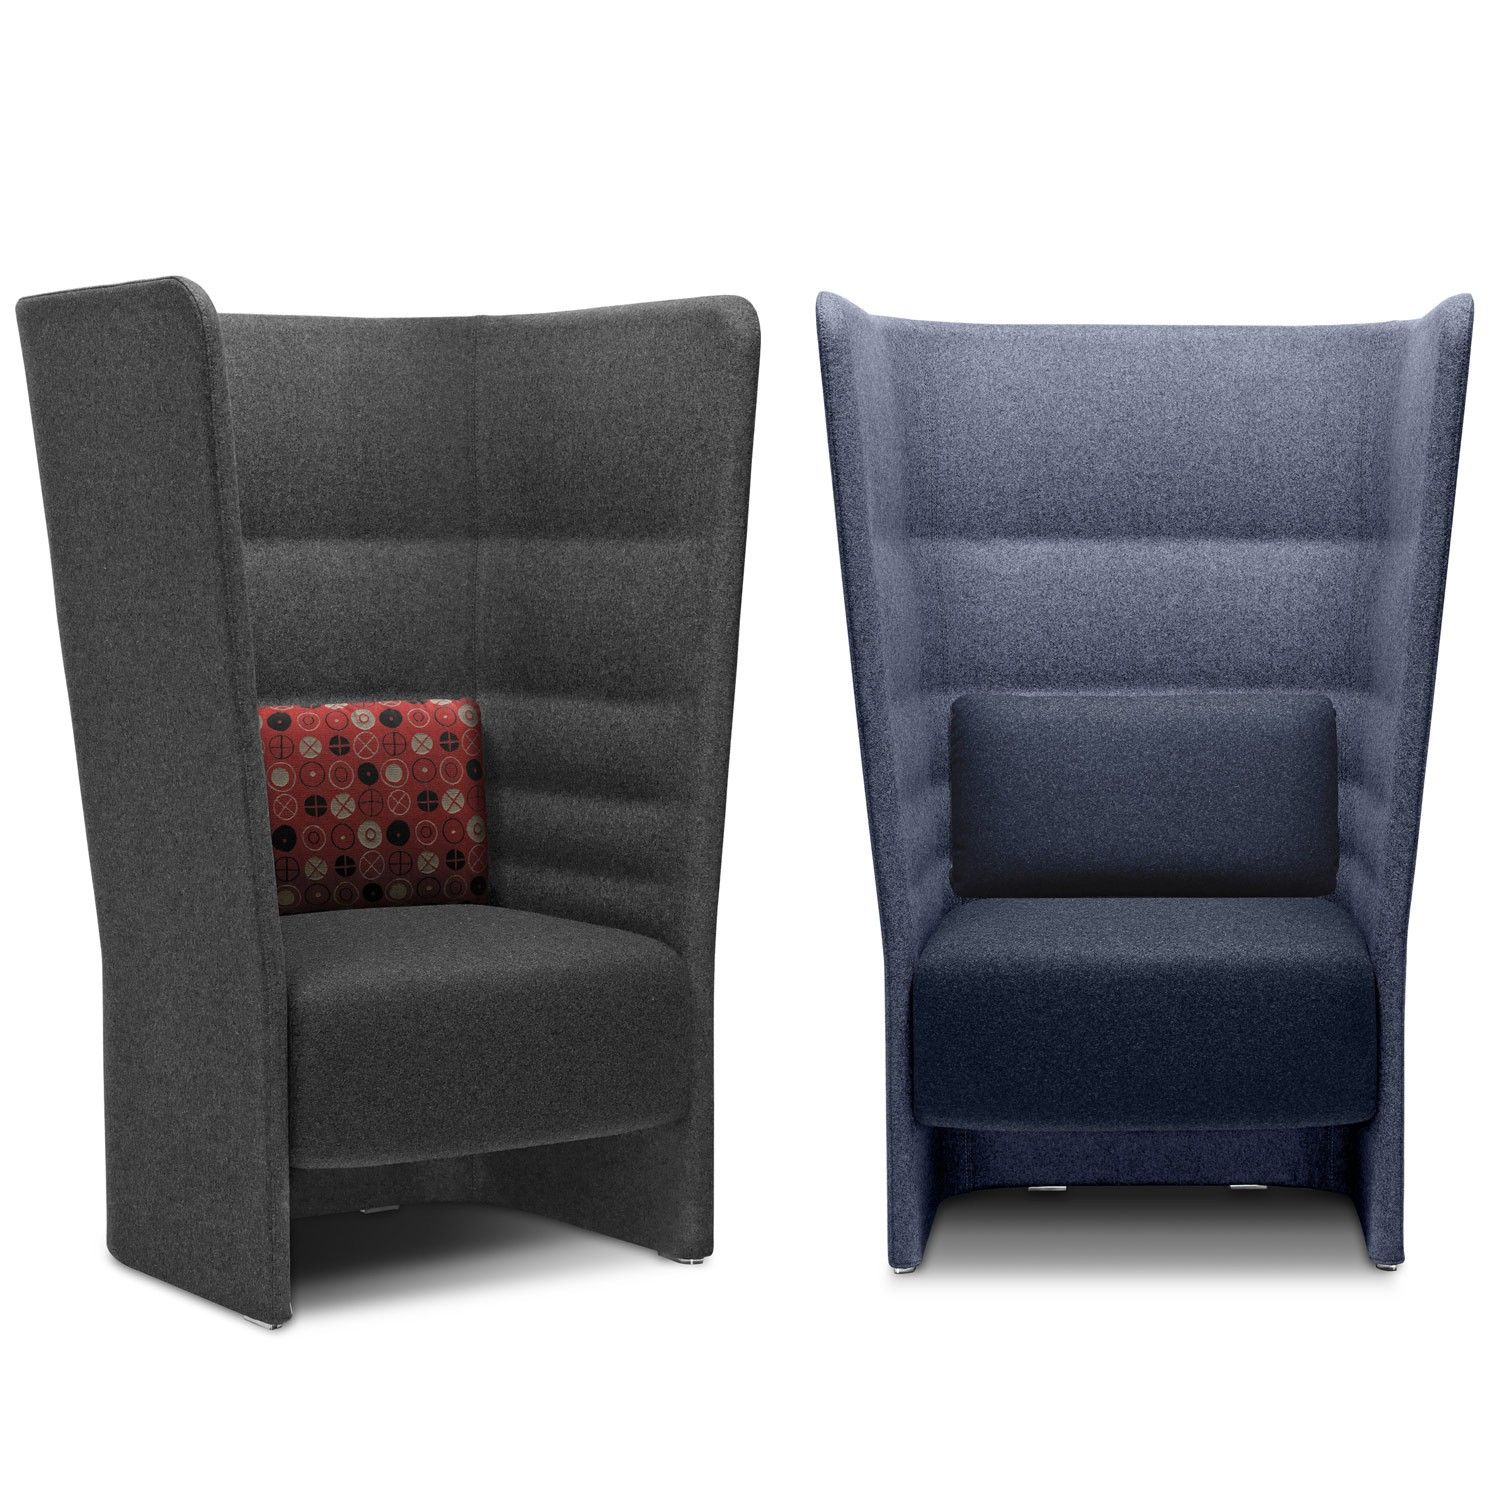 Genial Image Result For Private Meeting Armchair High Back APRES FURNITURE